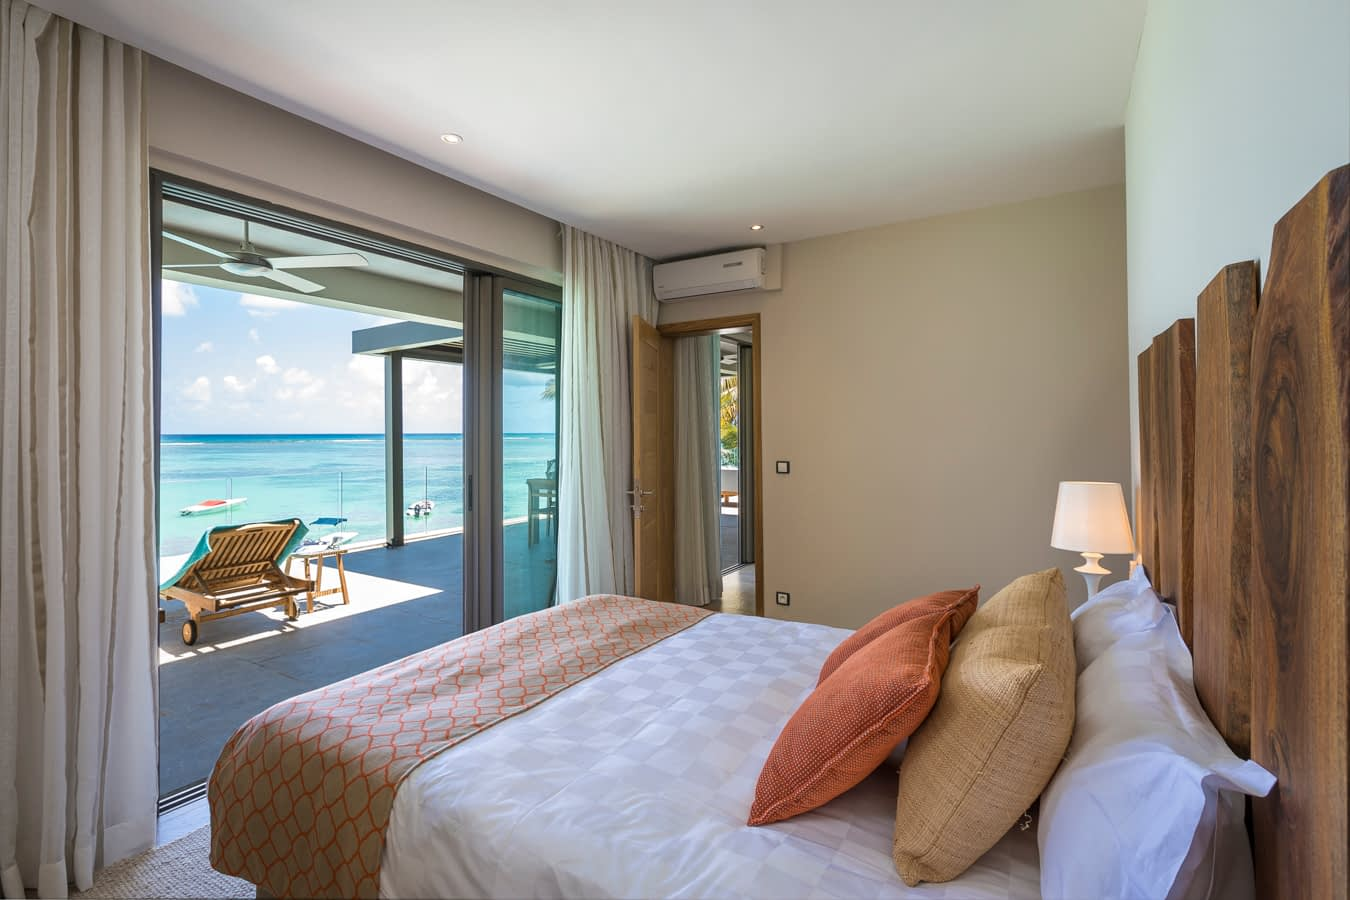 KotNor bedroom with sea view1